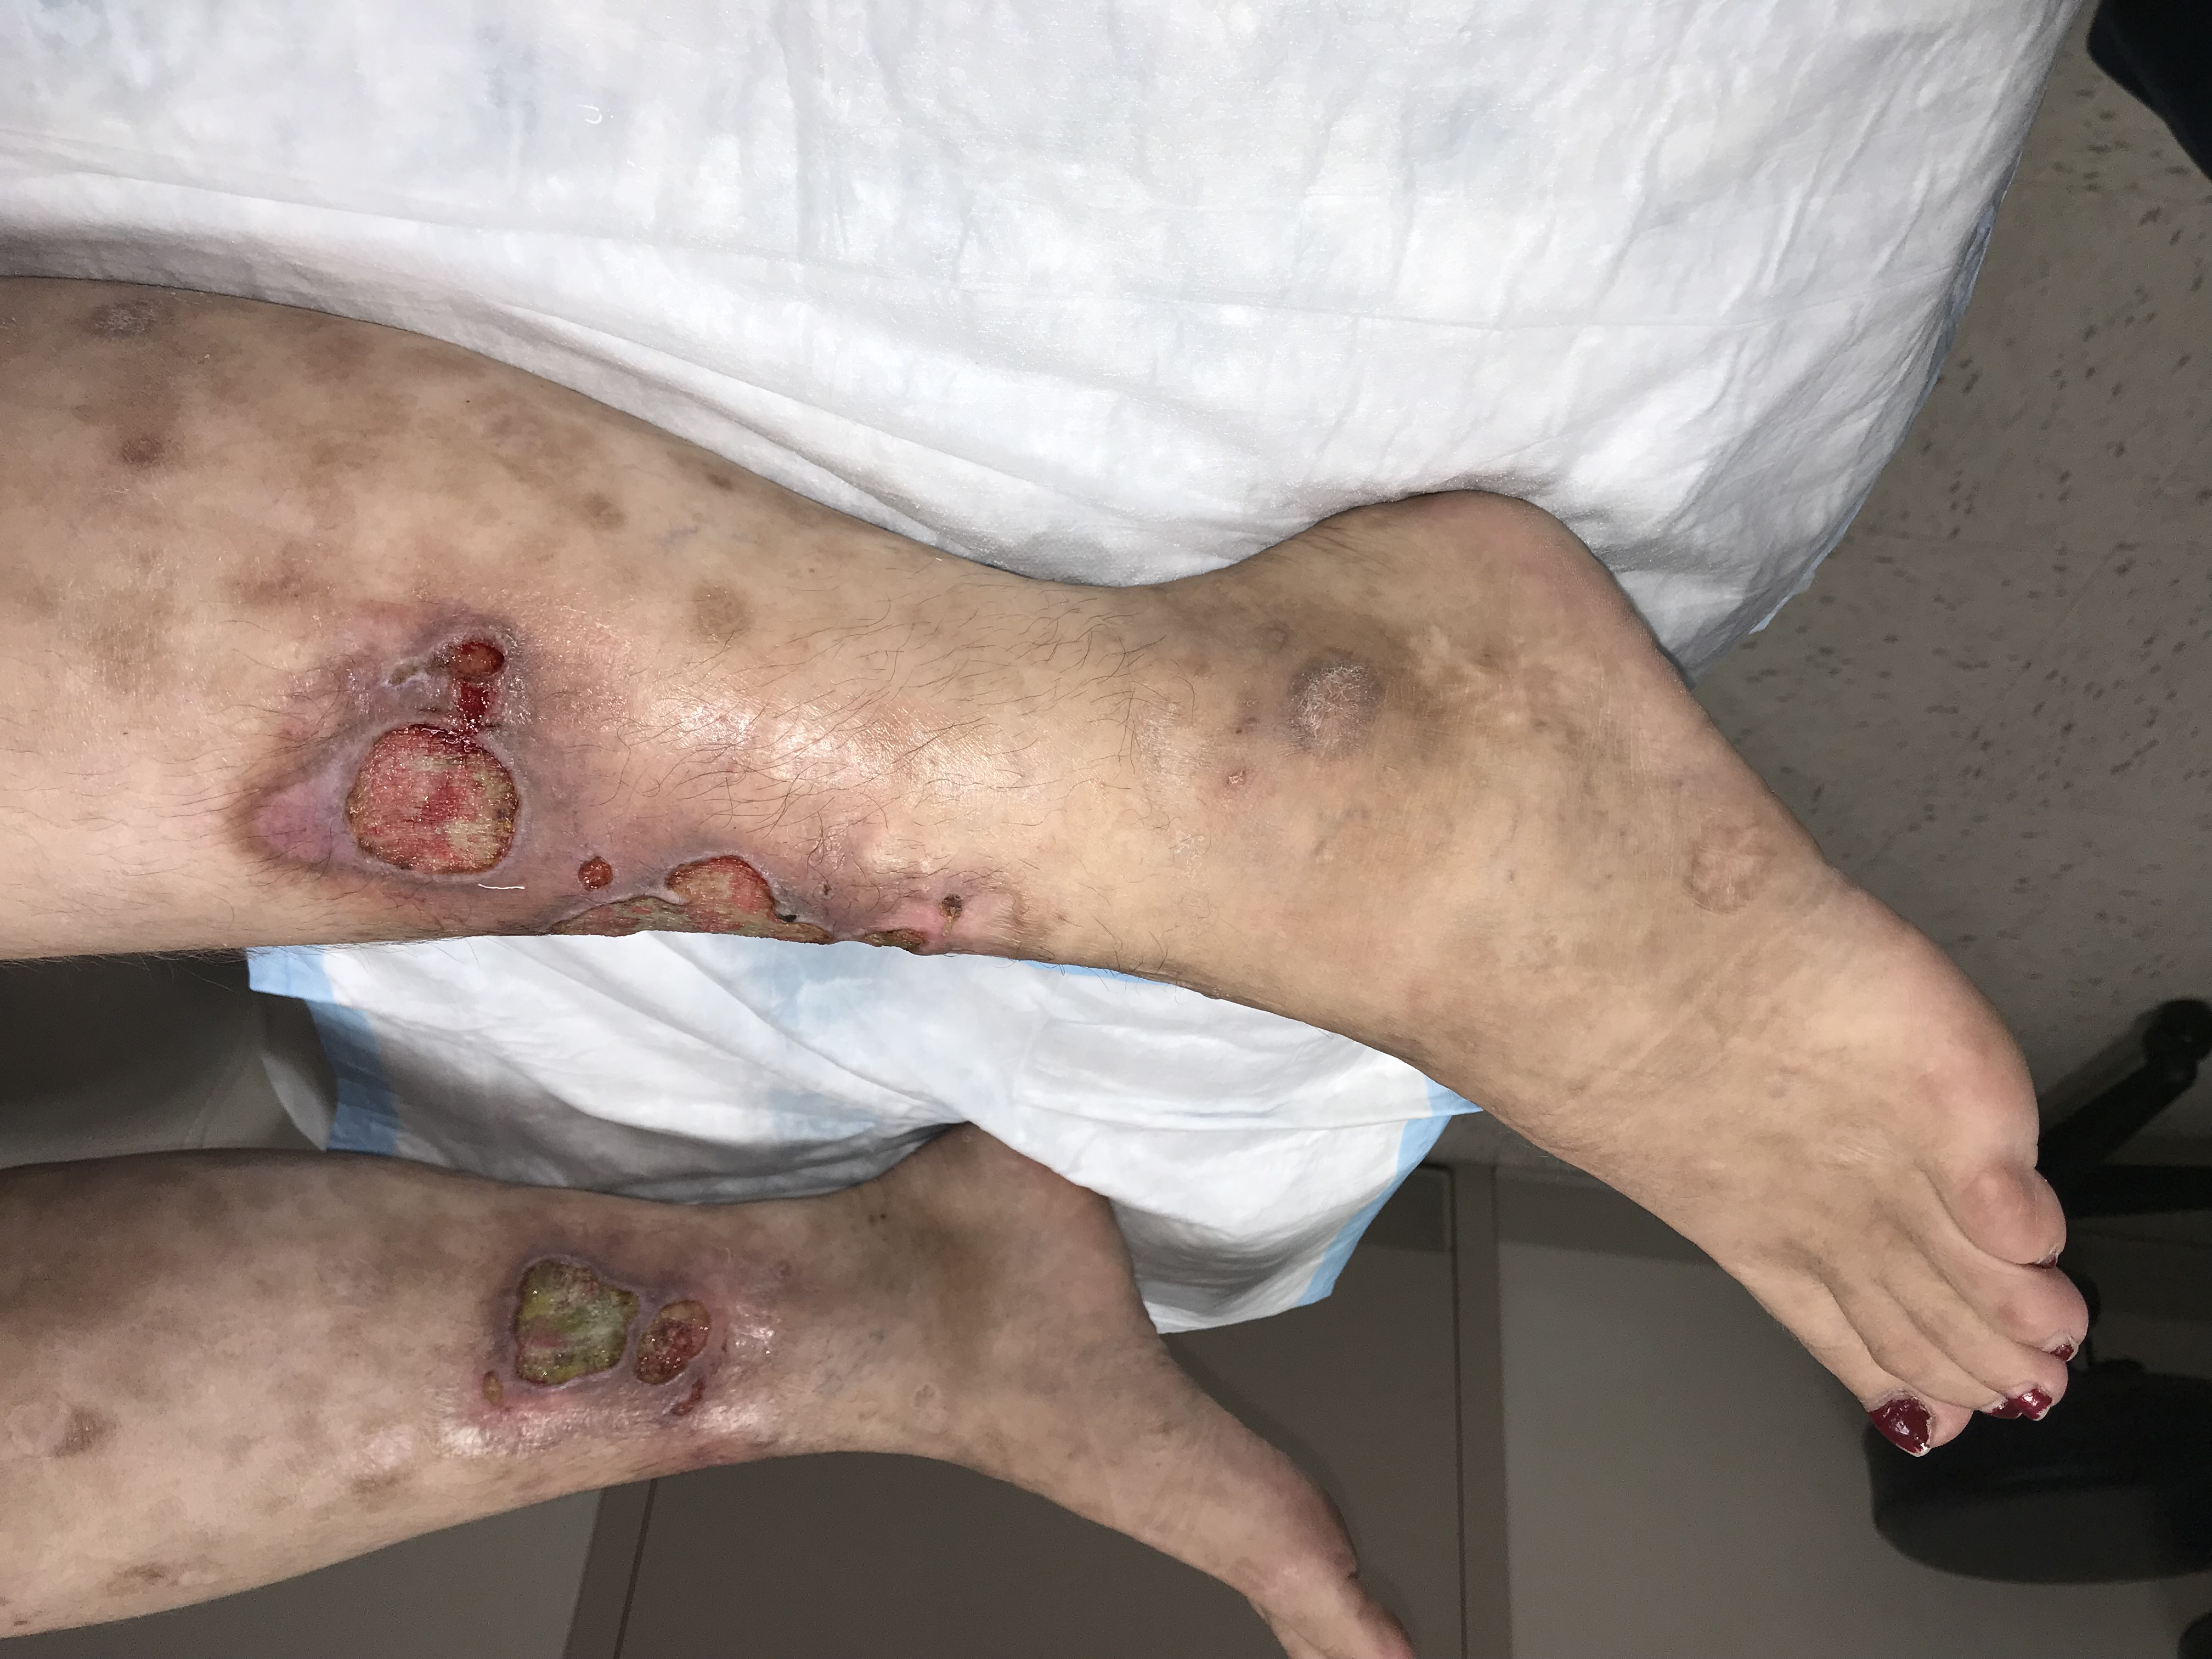 This patient's wound cultures showed no growth. Venous doppler was negative for lower extremity deep vein thrombosis (DVT). Bilateral leg X-rays did not show any pathology and chest X-rays were also clear. Ulcer tissue biopsy confirmed a diagnosis of polyarteritis nodosa.